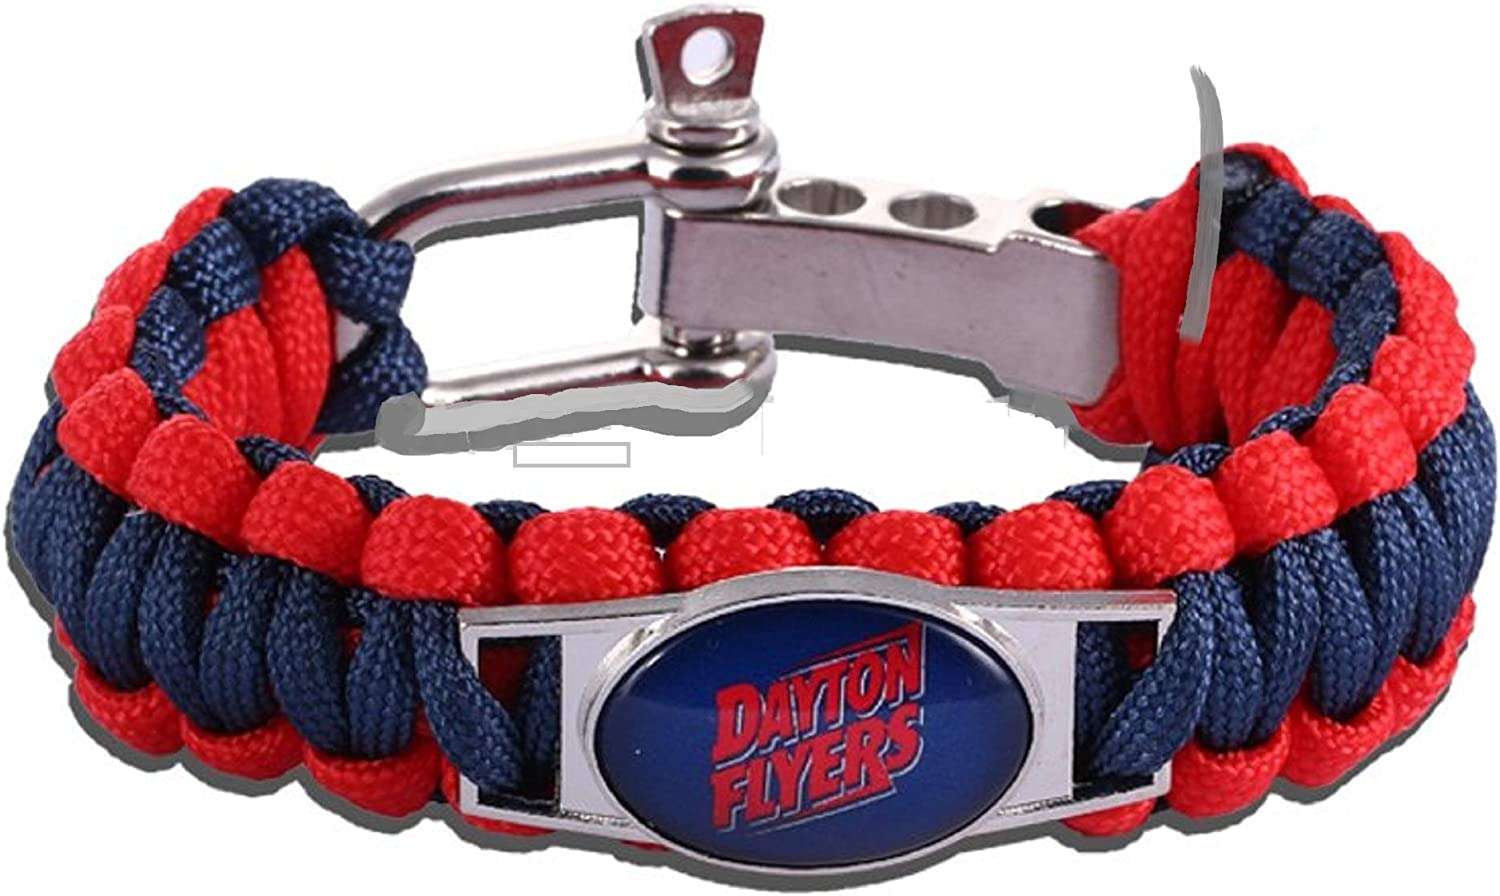 Swamp Fox Wisconsin Badgers Paracord Bracelet Adjustable with Insert Pin 7 to 9